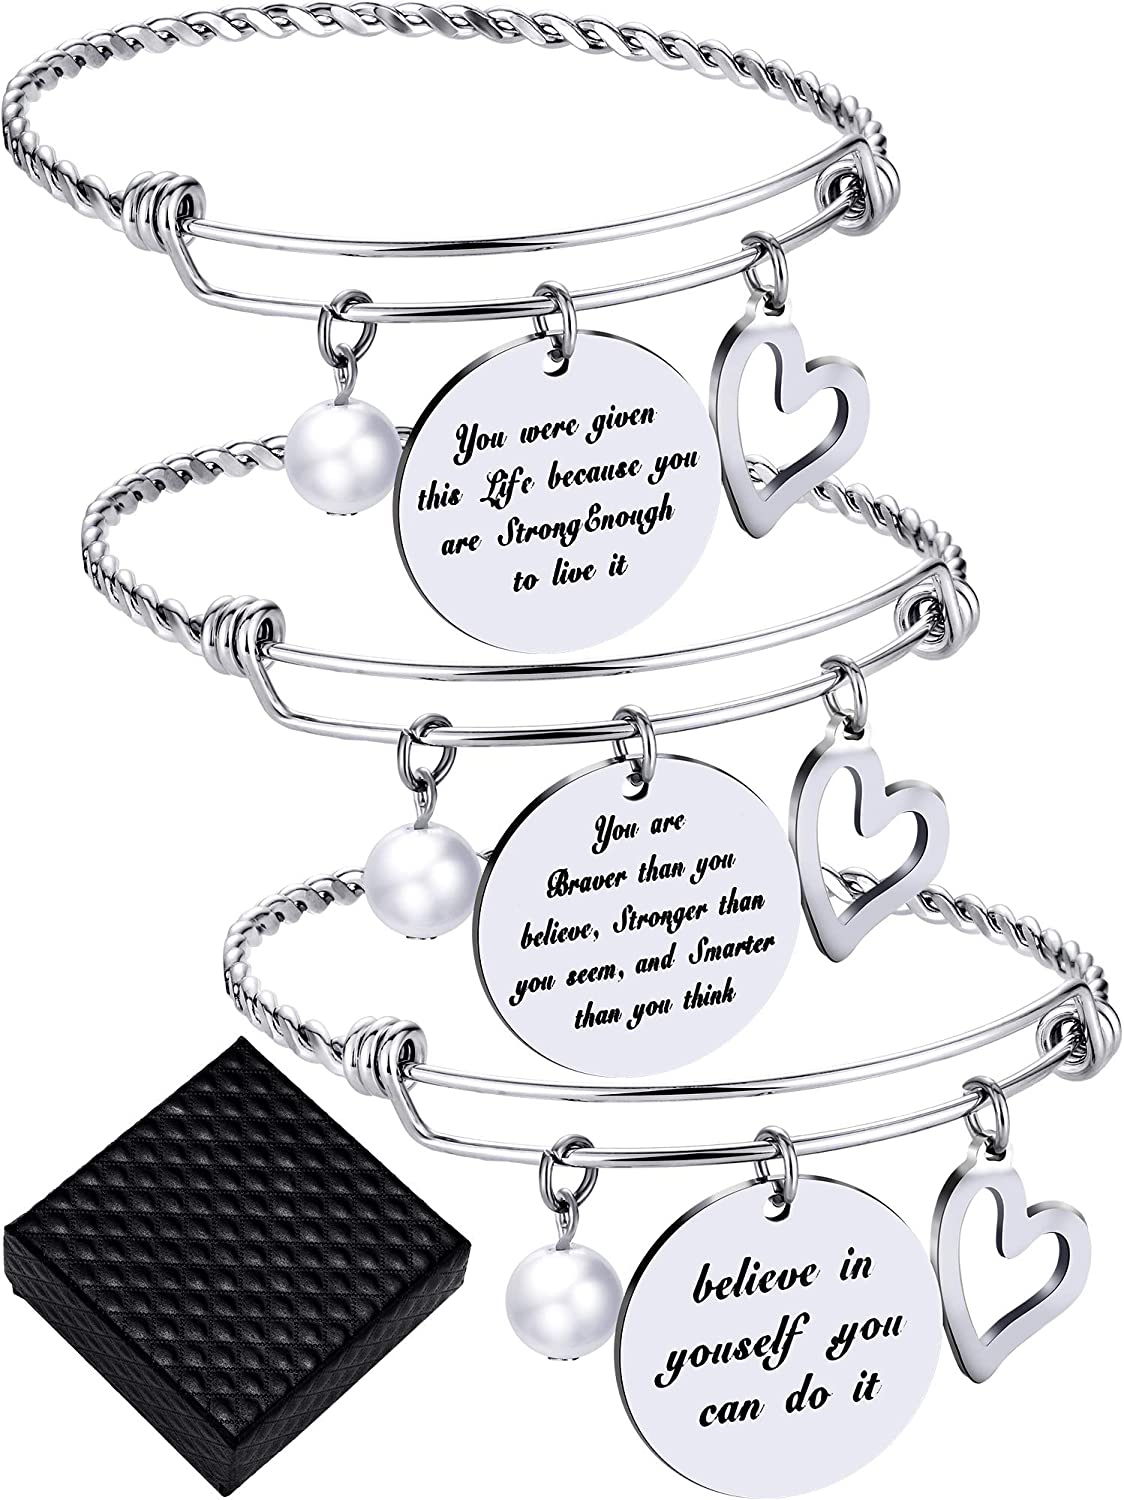 3 Pieces Inspirational Bangle Bracelets Adjustable Motivational Bracelet Stainless Steel Jewelry for Valentine's Day Women Gift